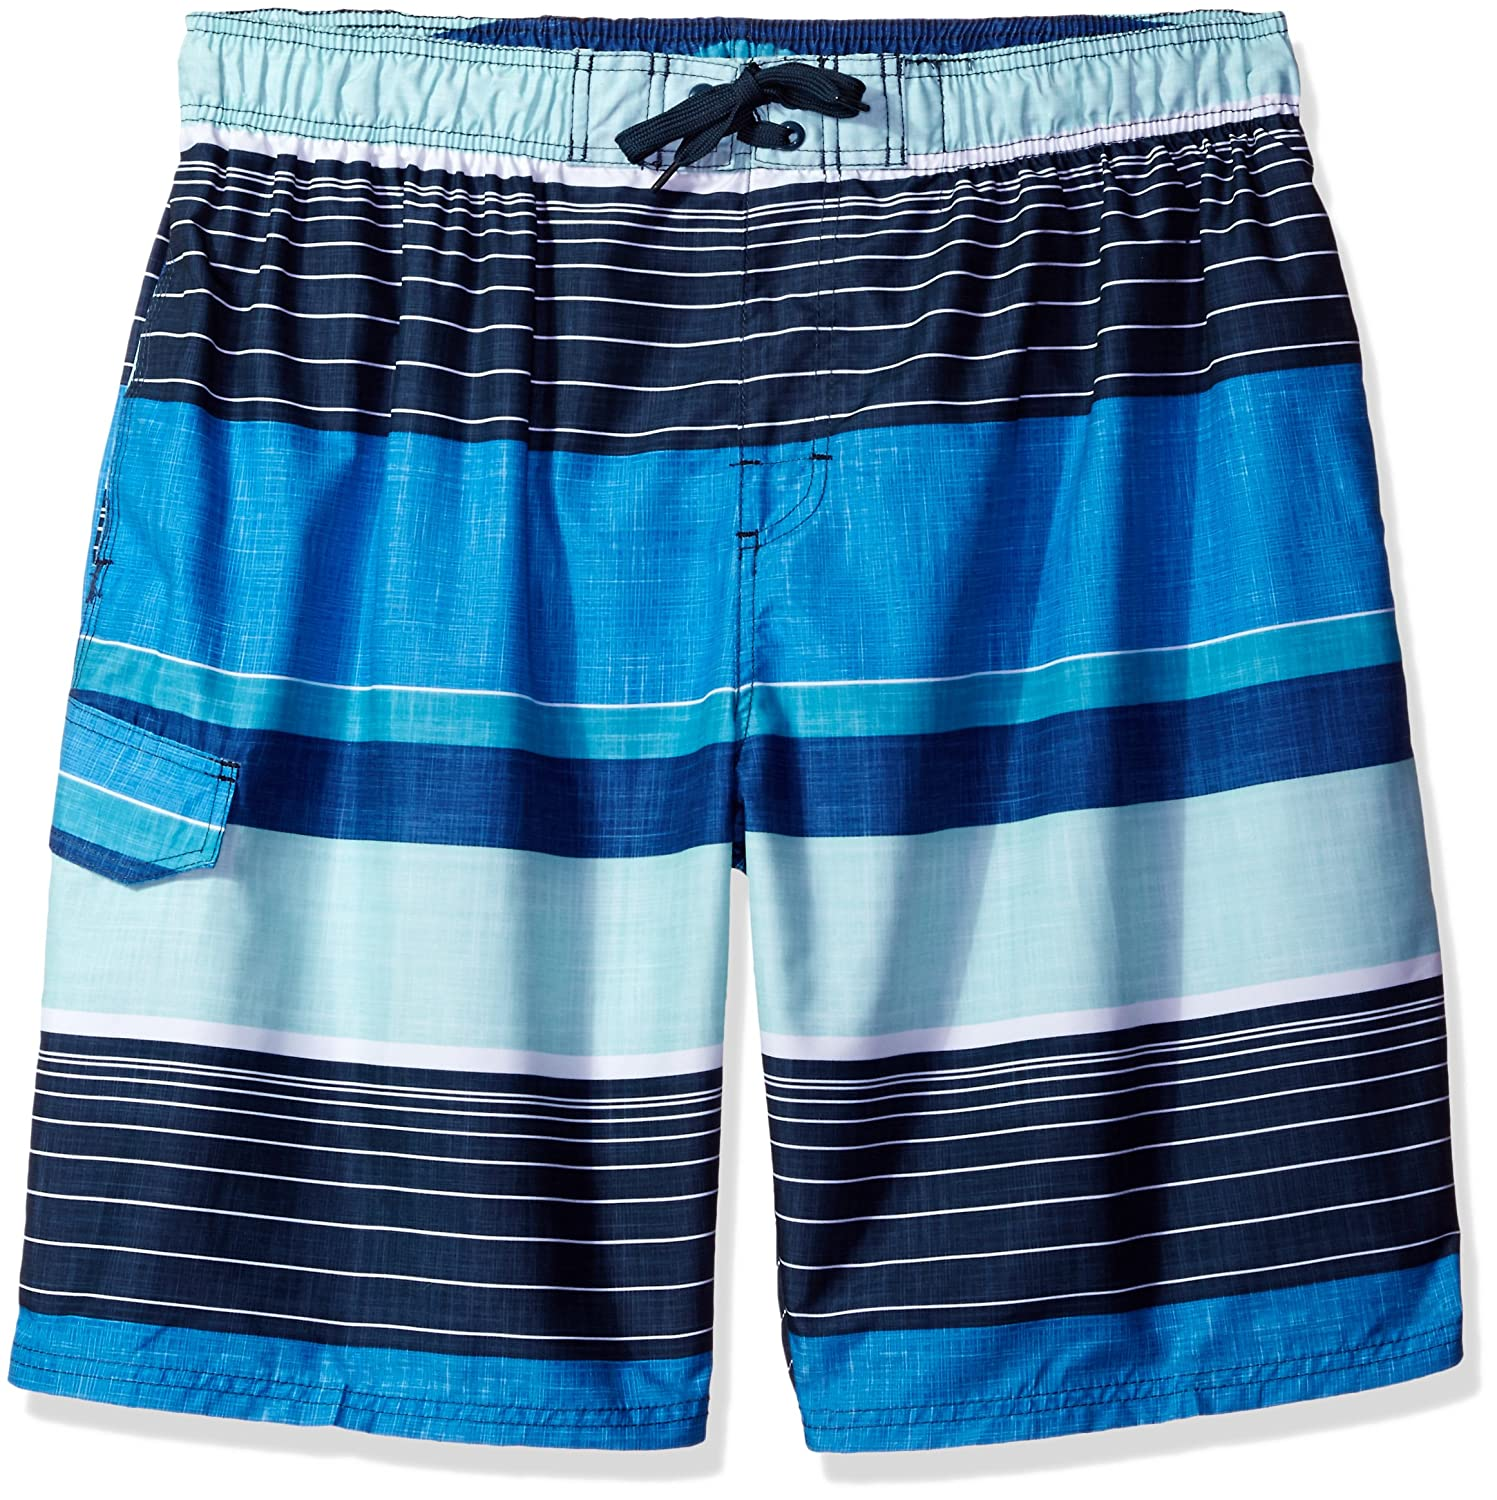 Kanu Surf Mens Big Big Viper Extended Size Stripe Swim Trunk Kanu Surf Men' s Swimwear 4453X